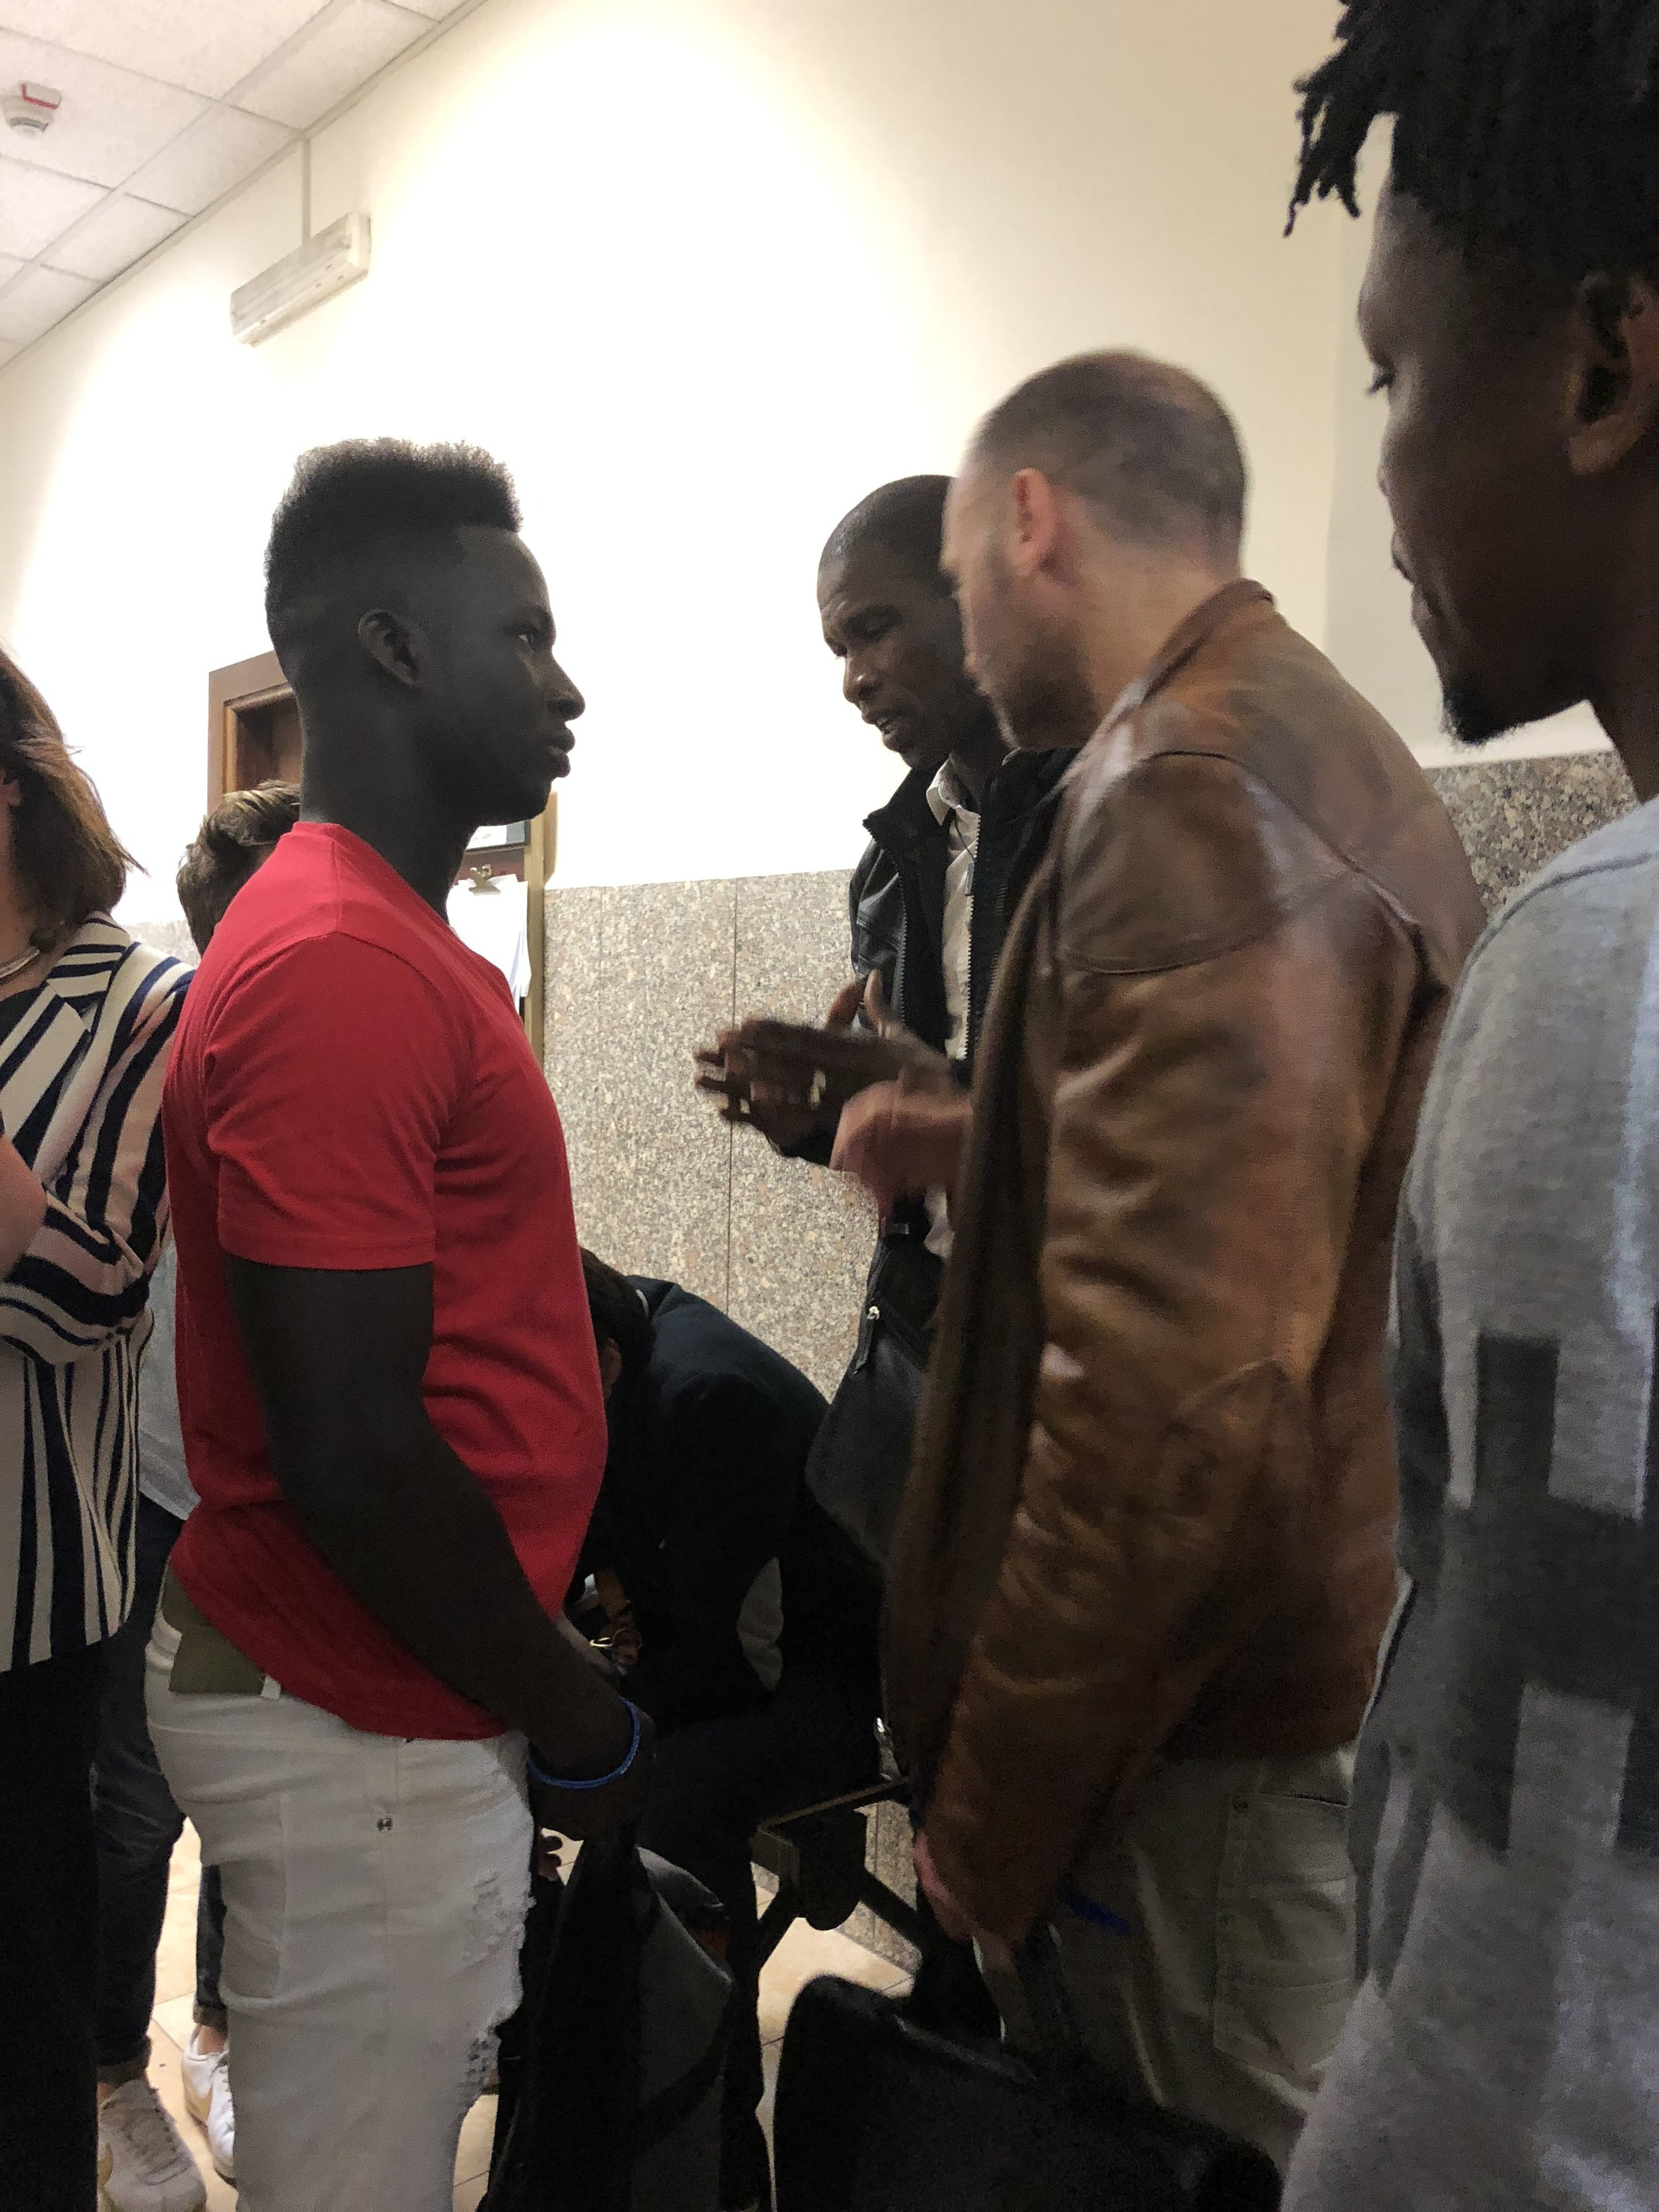 Pazi consulting with his lawyer, at left, in the hectic corridor. Rome, Italy; 24 April 2018. © Pamela Kerpius